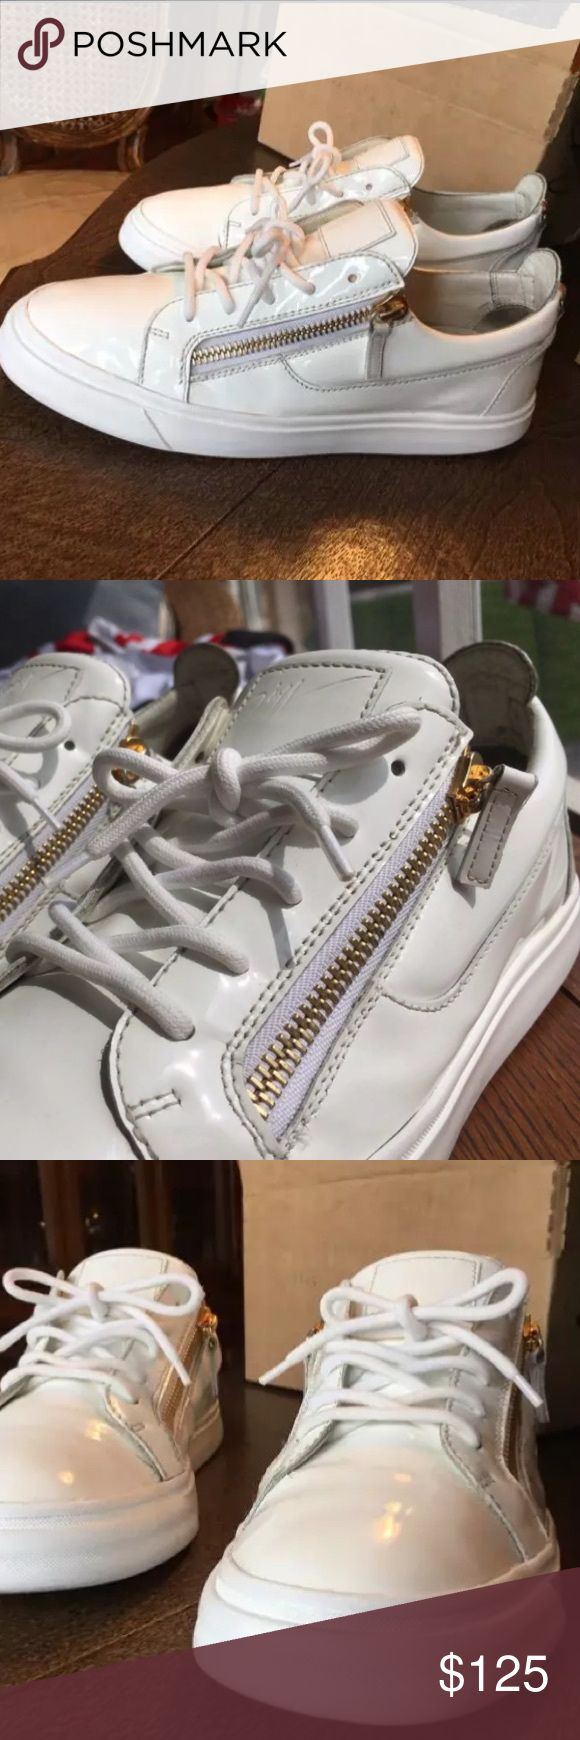 GIUSEPPE ZANOTTI MAY LONDON SNEAKERS EU 42 US 9 Men's white patent leather Giuseppe Zanotti May London round-toe low-top sneakers with gold-tone hardware, embossed logo at tongue, pull tab and faux zipper at counters, rubber soles, zip closures at sides and lace tie closures at uppers Giuseppe Zanotti Shoes Sneakers